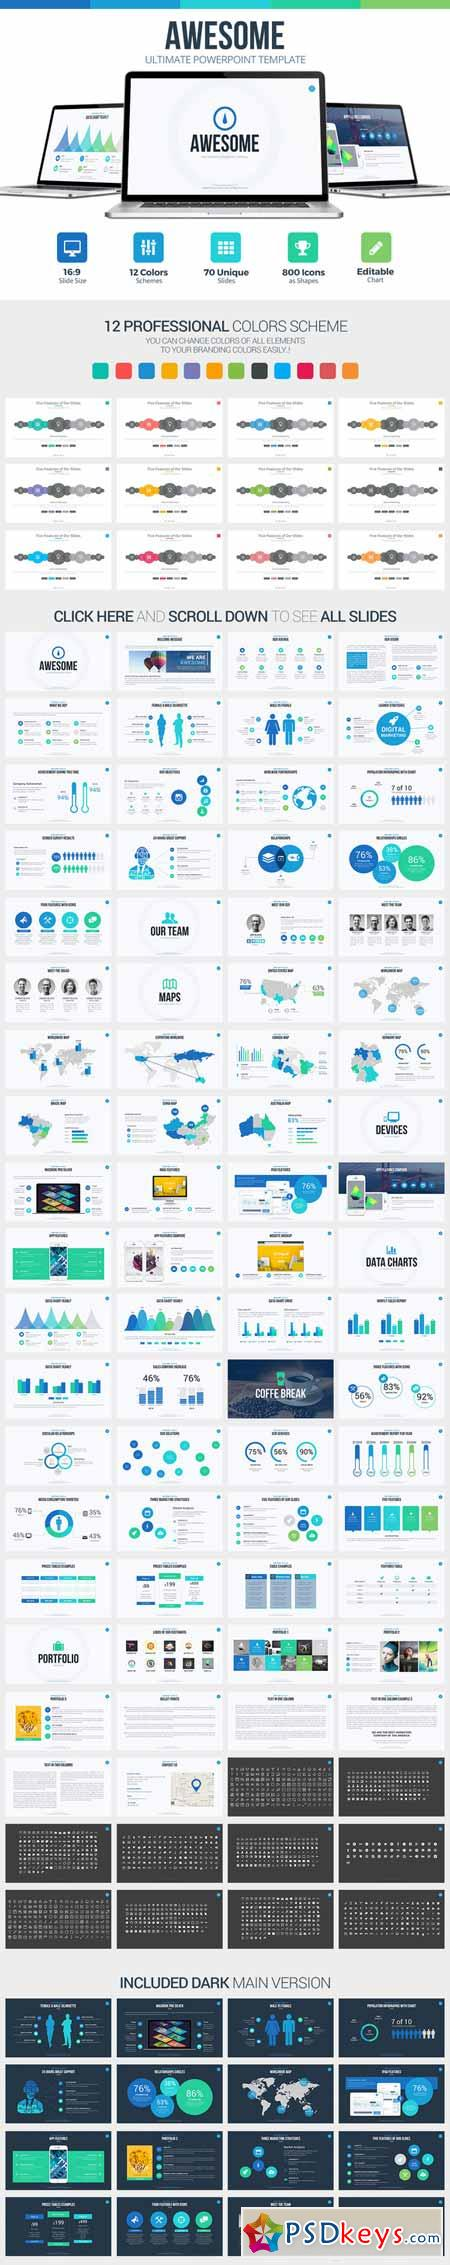 awesome powerpoint template 365445 187 free download